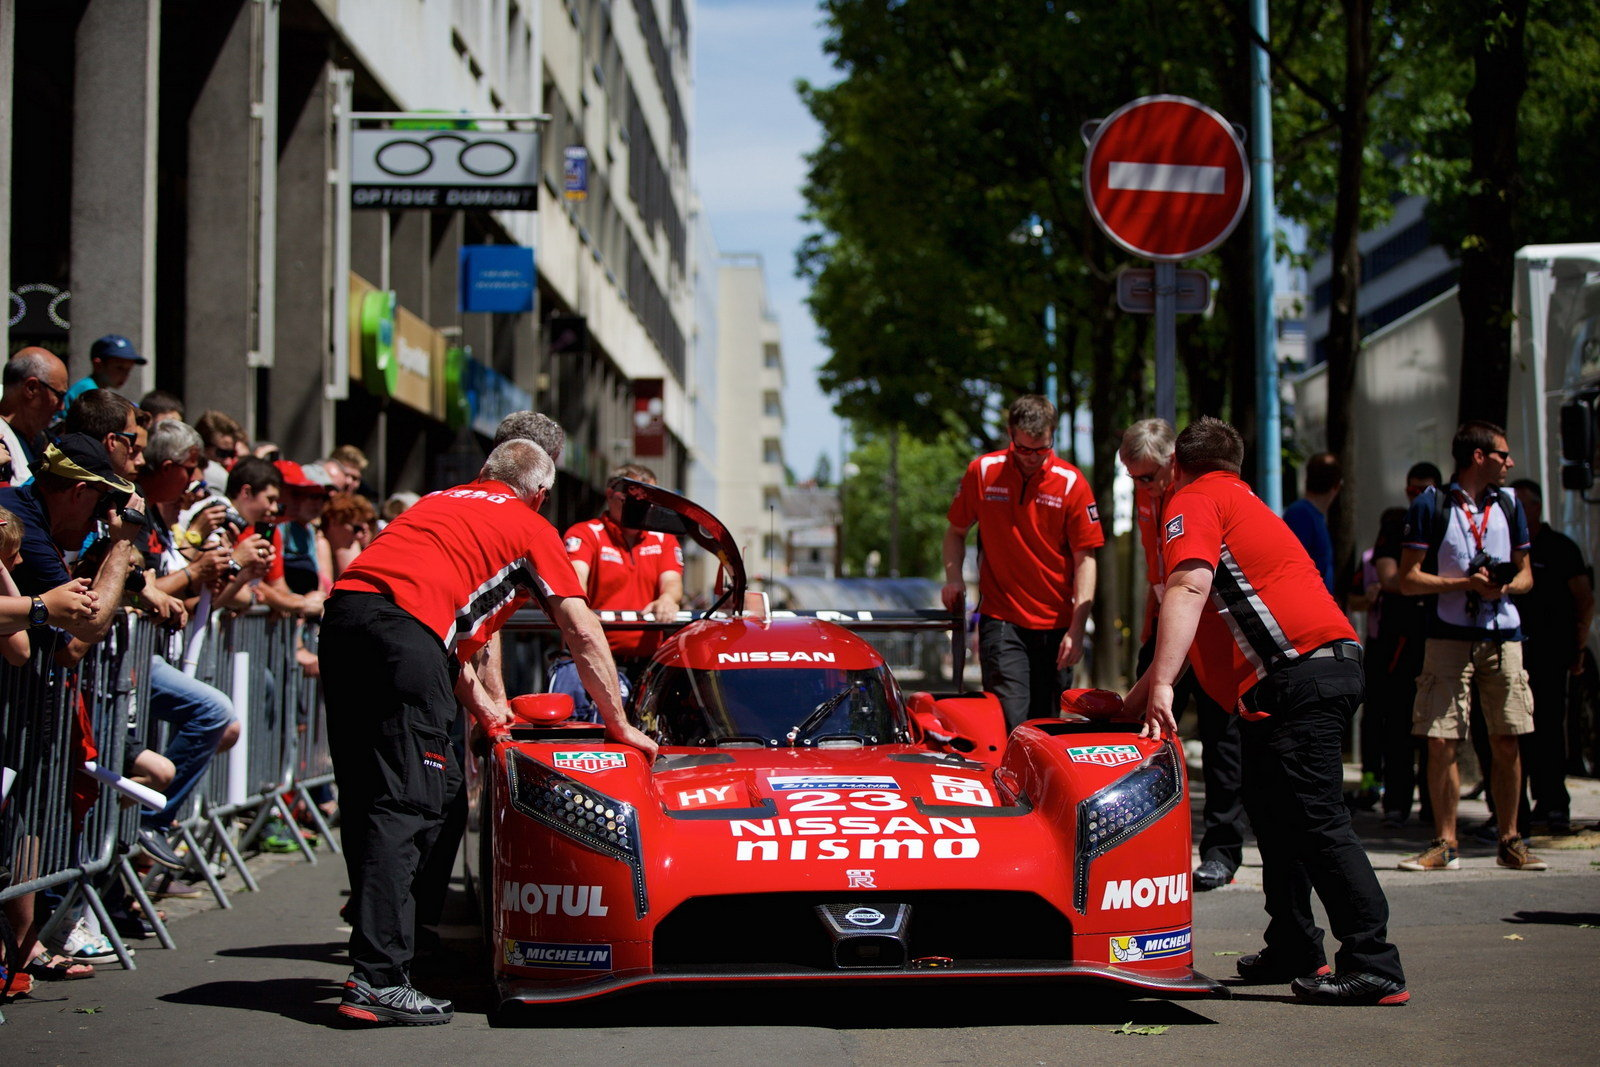 nissan at le mans scrutineering timelapse video picture 633410 car news top speed. Black Bedroom Furniture Sets. Home Design Ideas